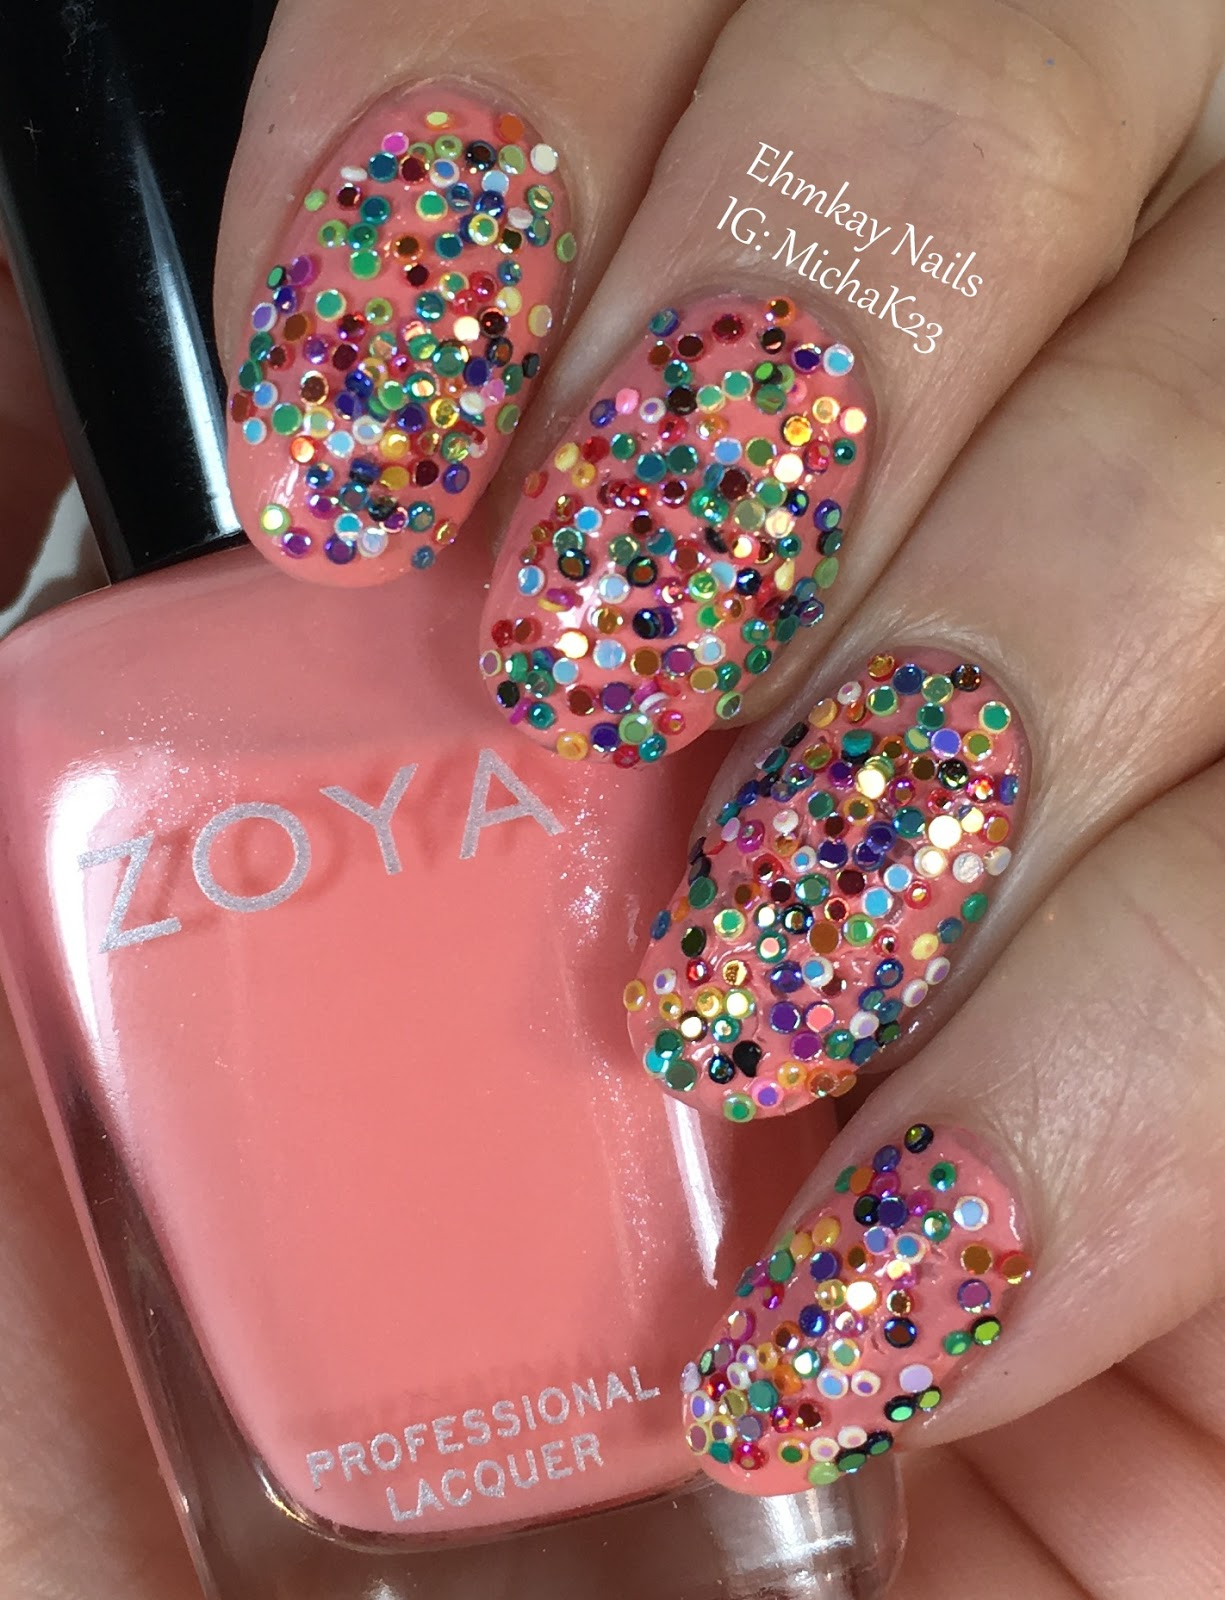 ehmkay nails: Sprinkles Nail Art with Lady Queen Nail Gems